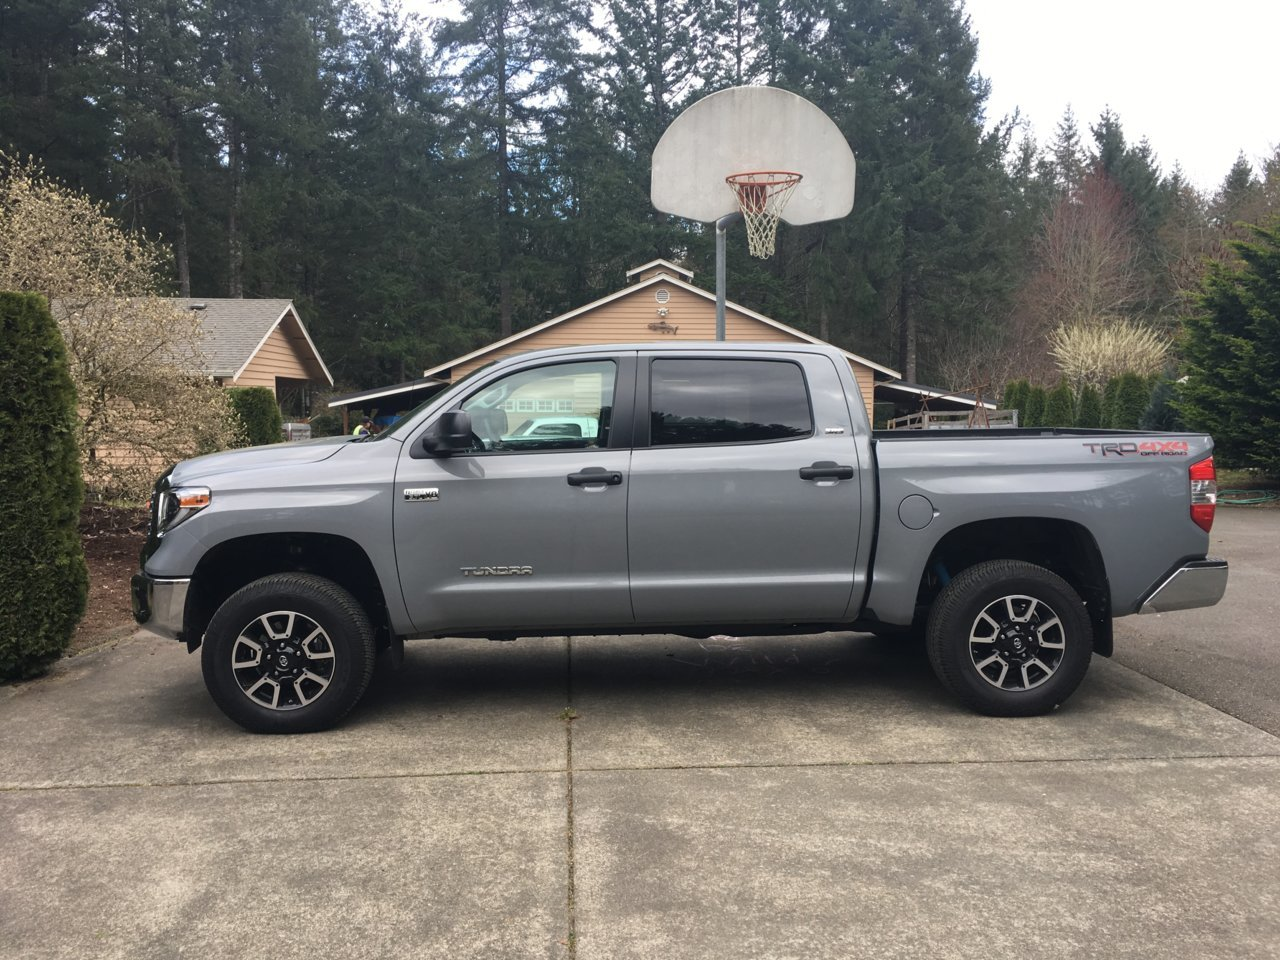 low range off road tundra leveling kit review